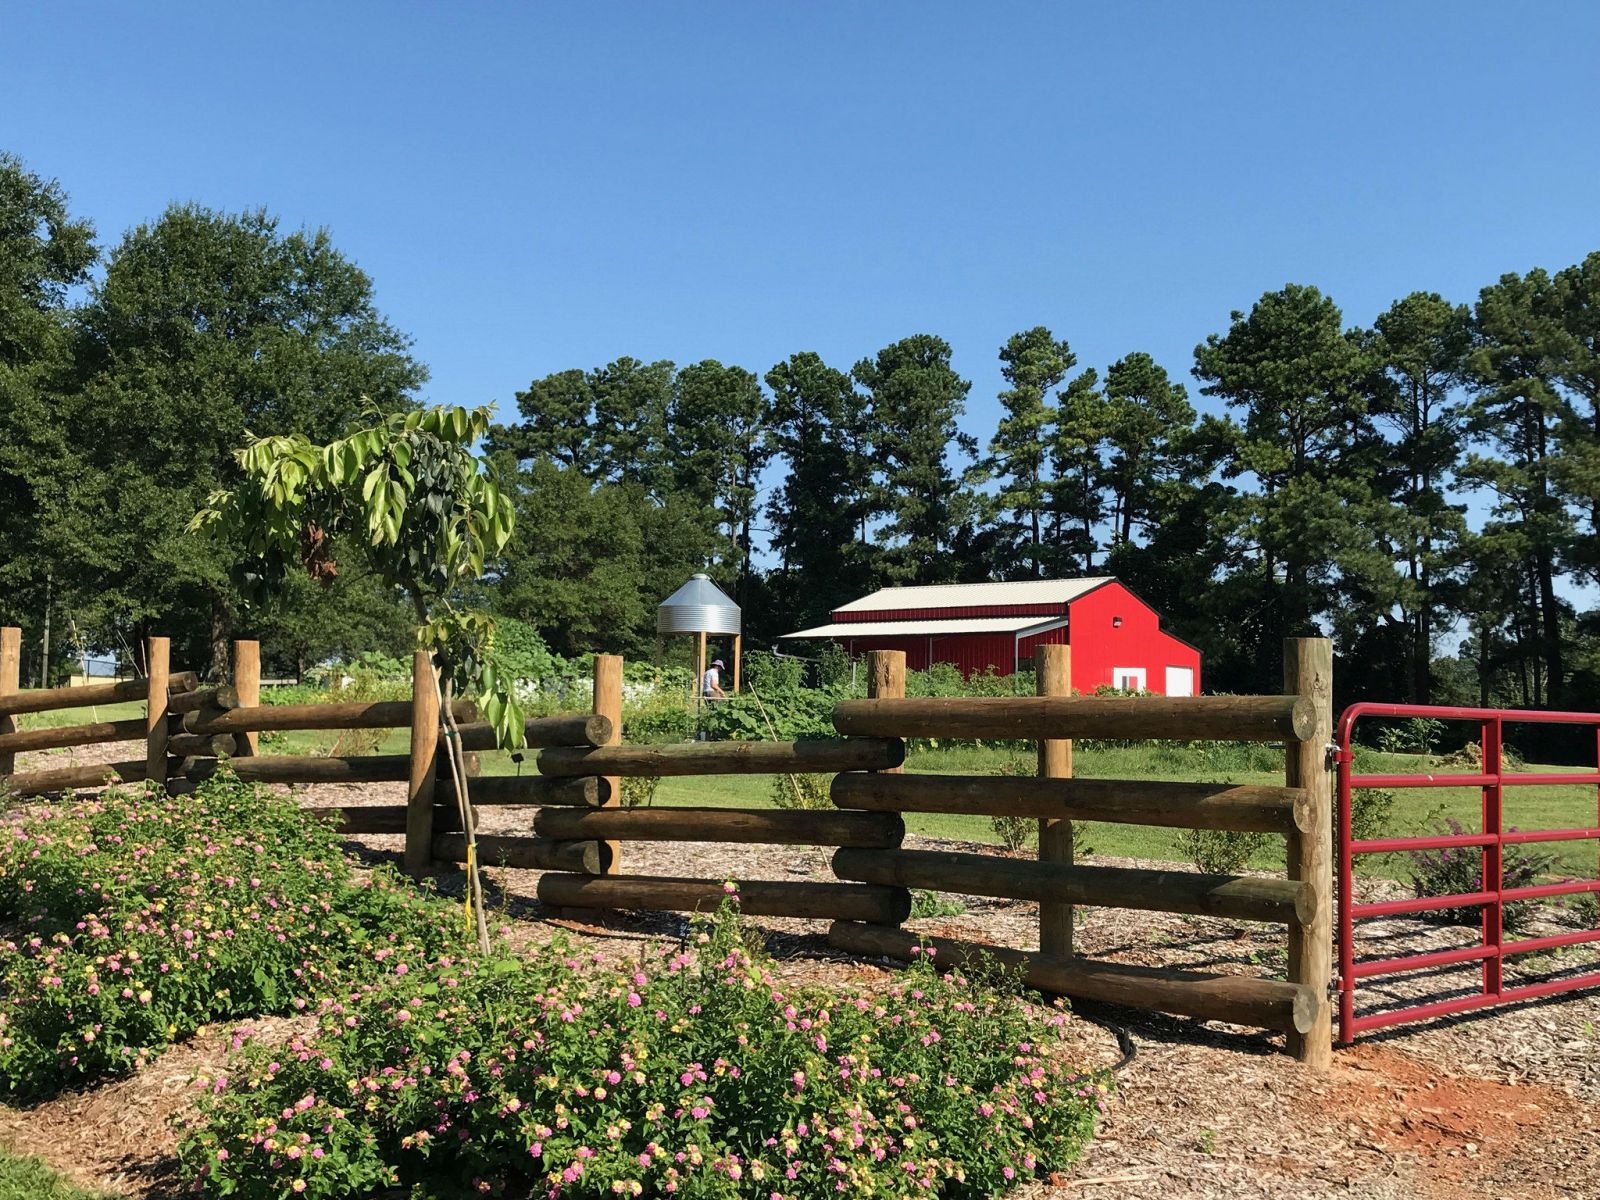 The Center for Sustainable Agriculture has opened at Spartanburg Community College. (Photo/Provided)